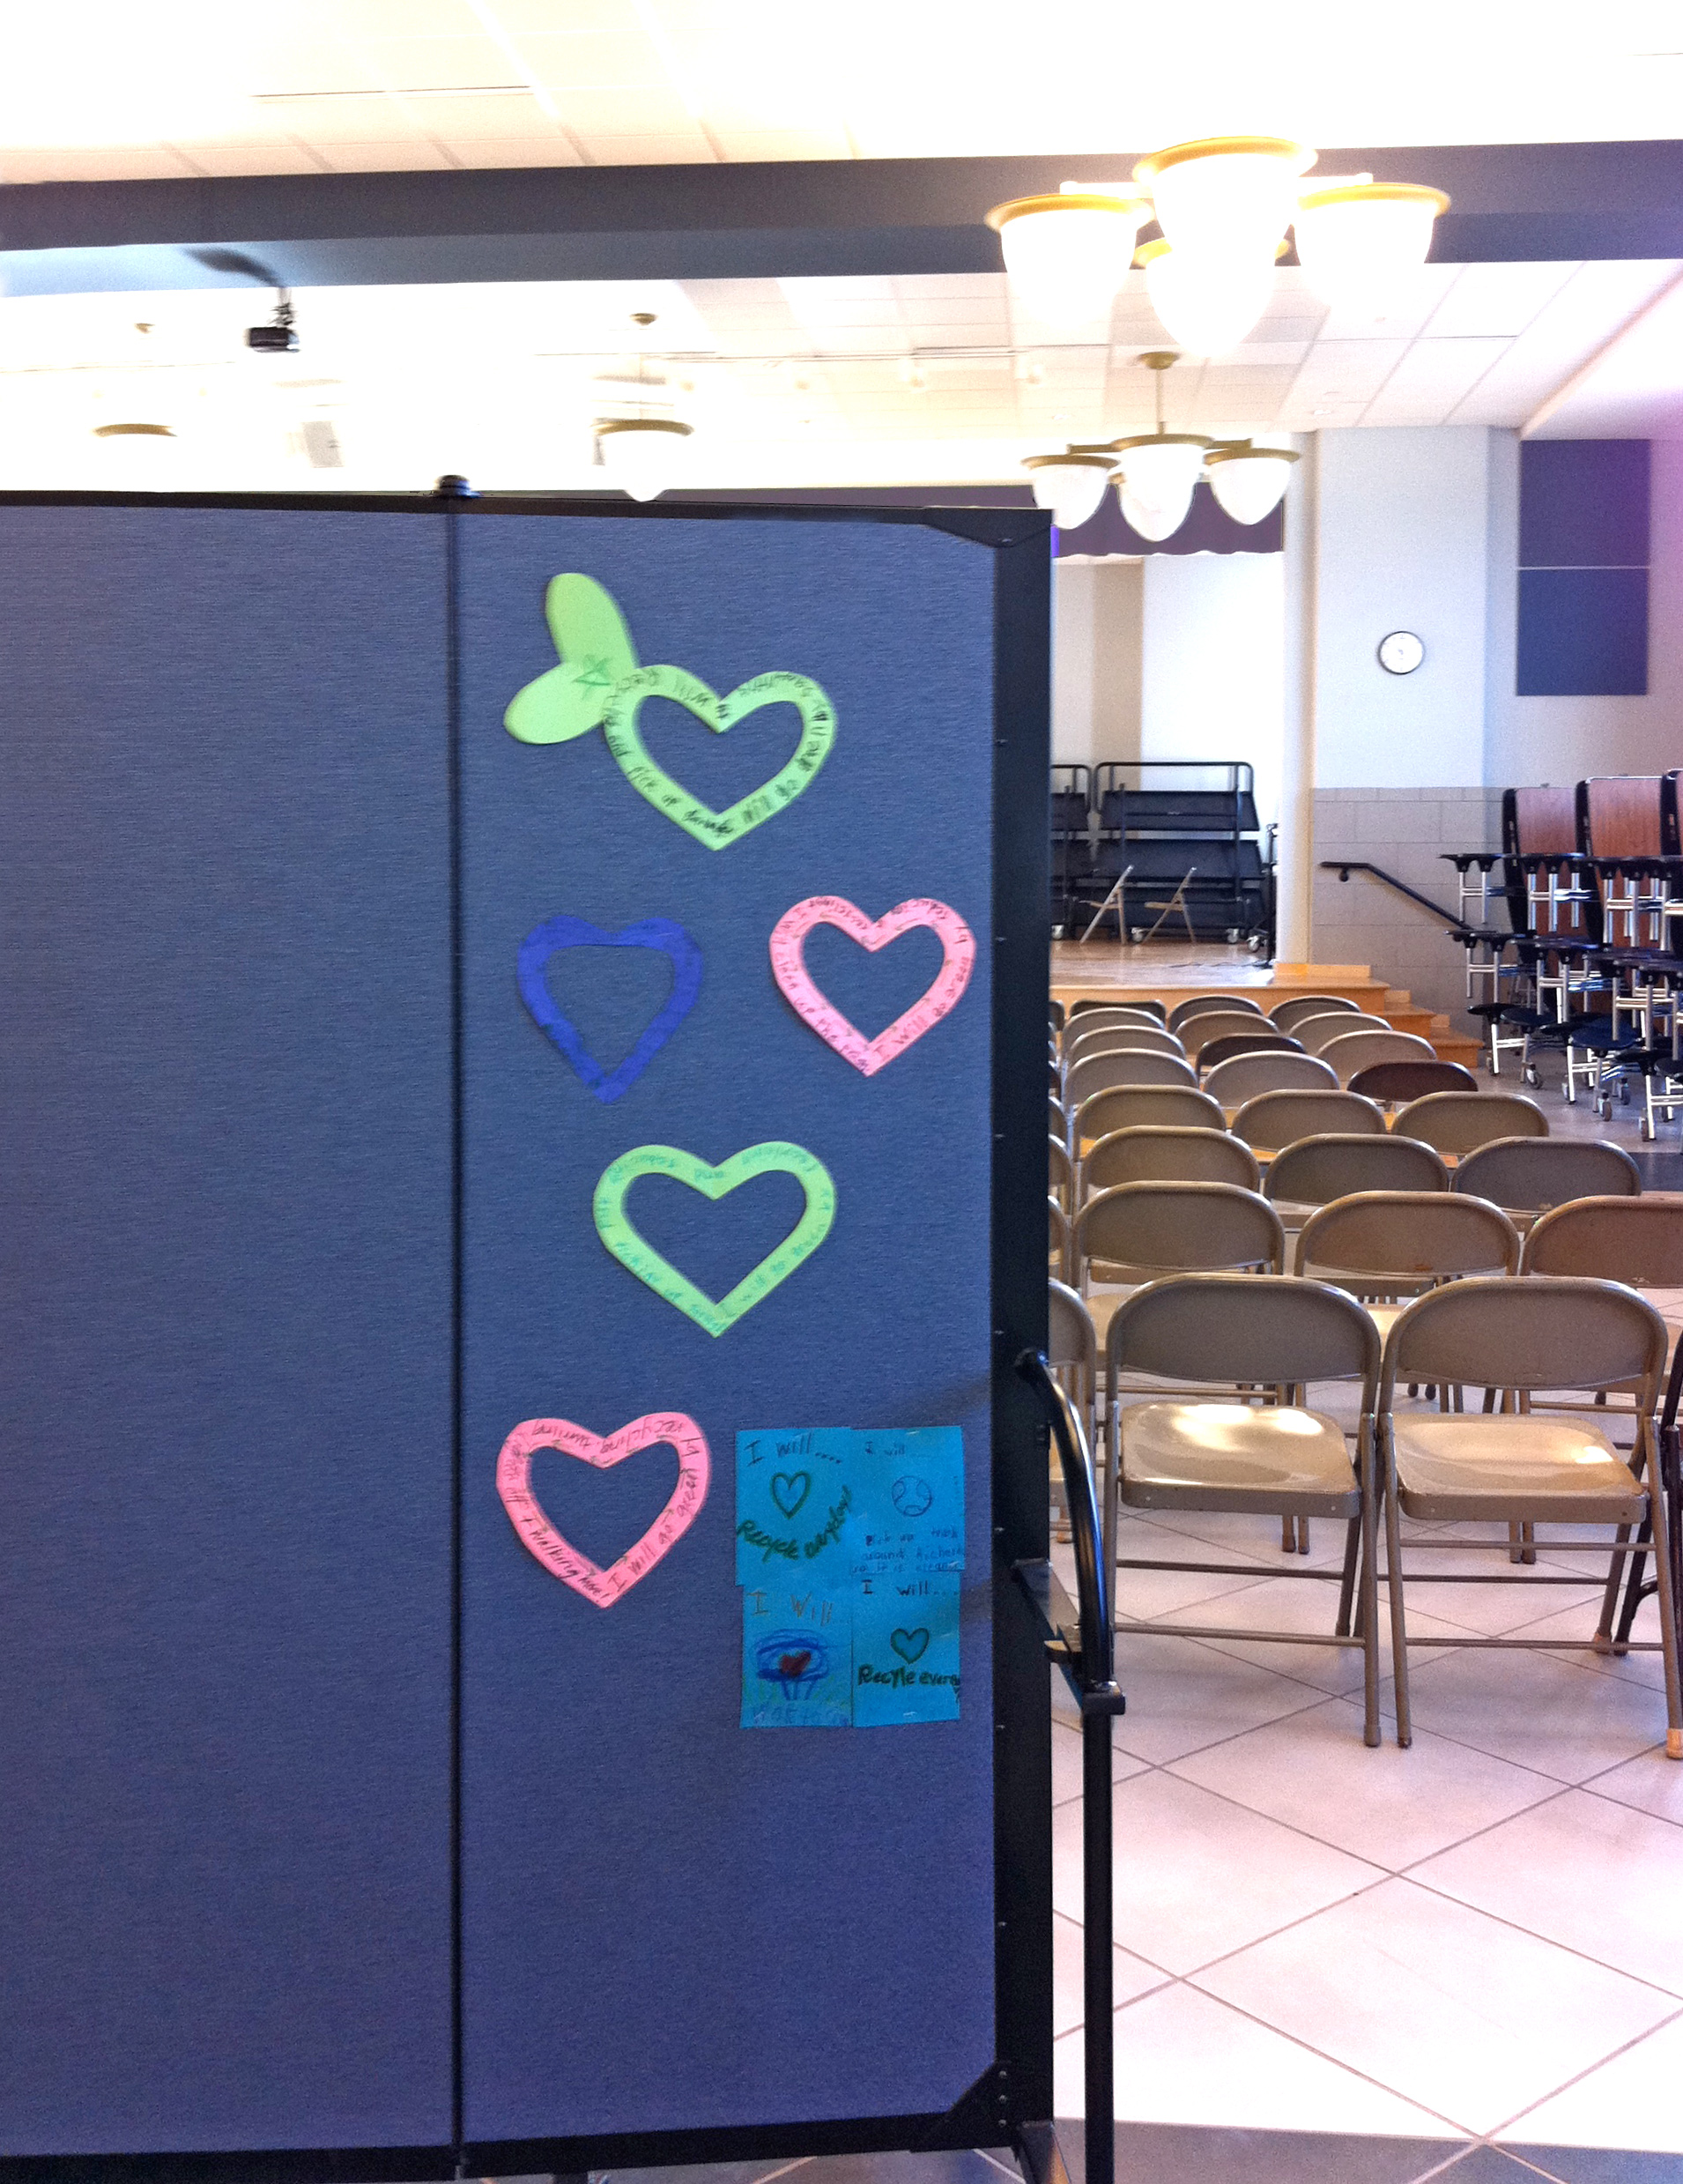 5 decorative hearts tacked to a room divider in the rear of church hall